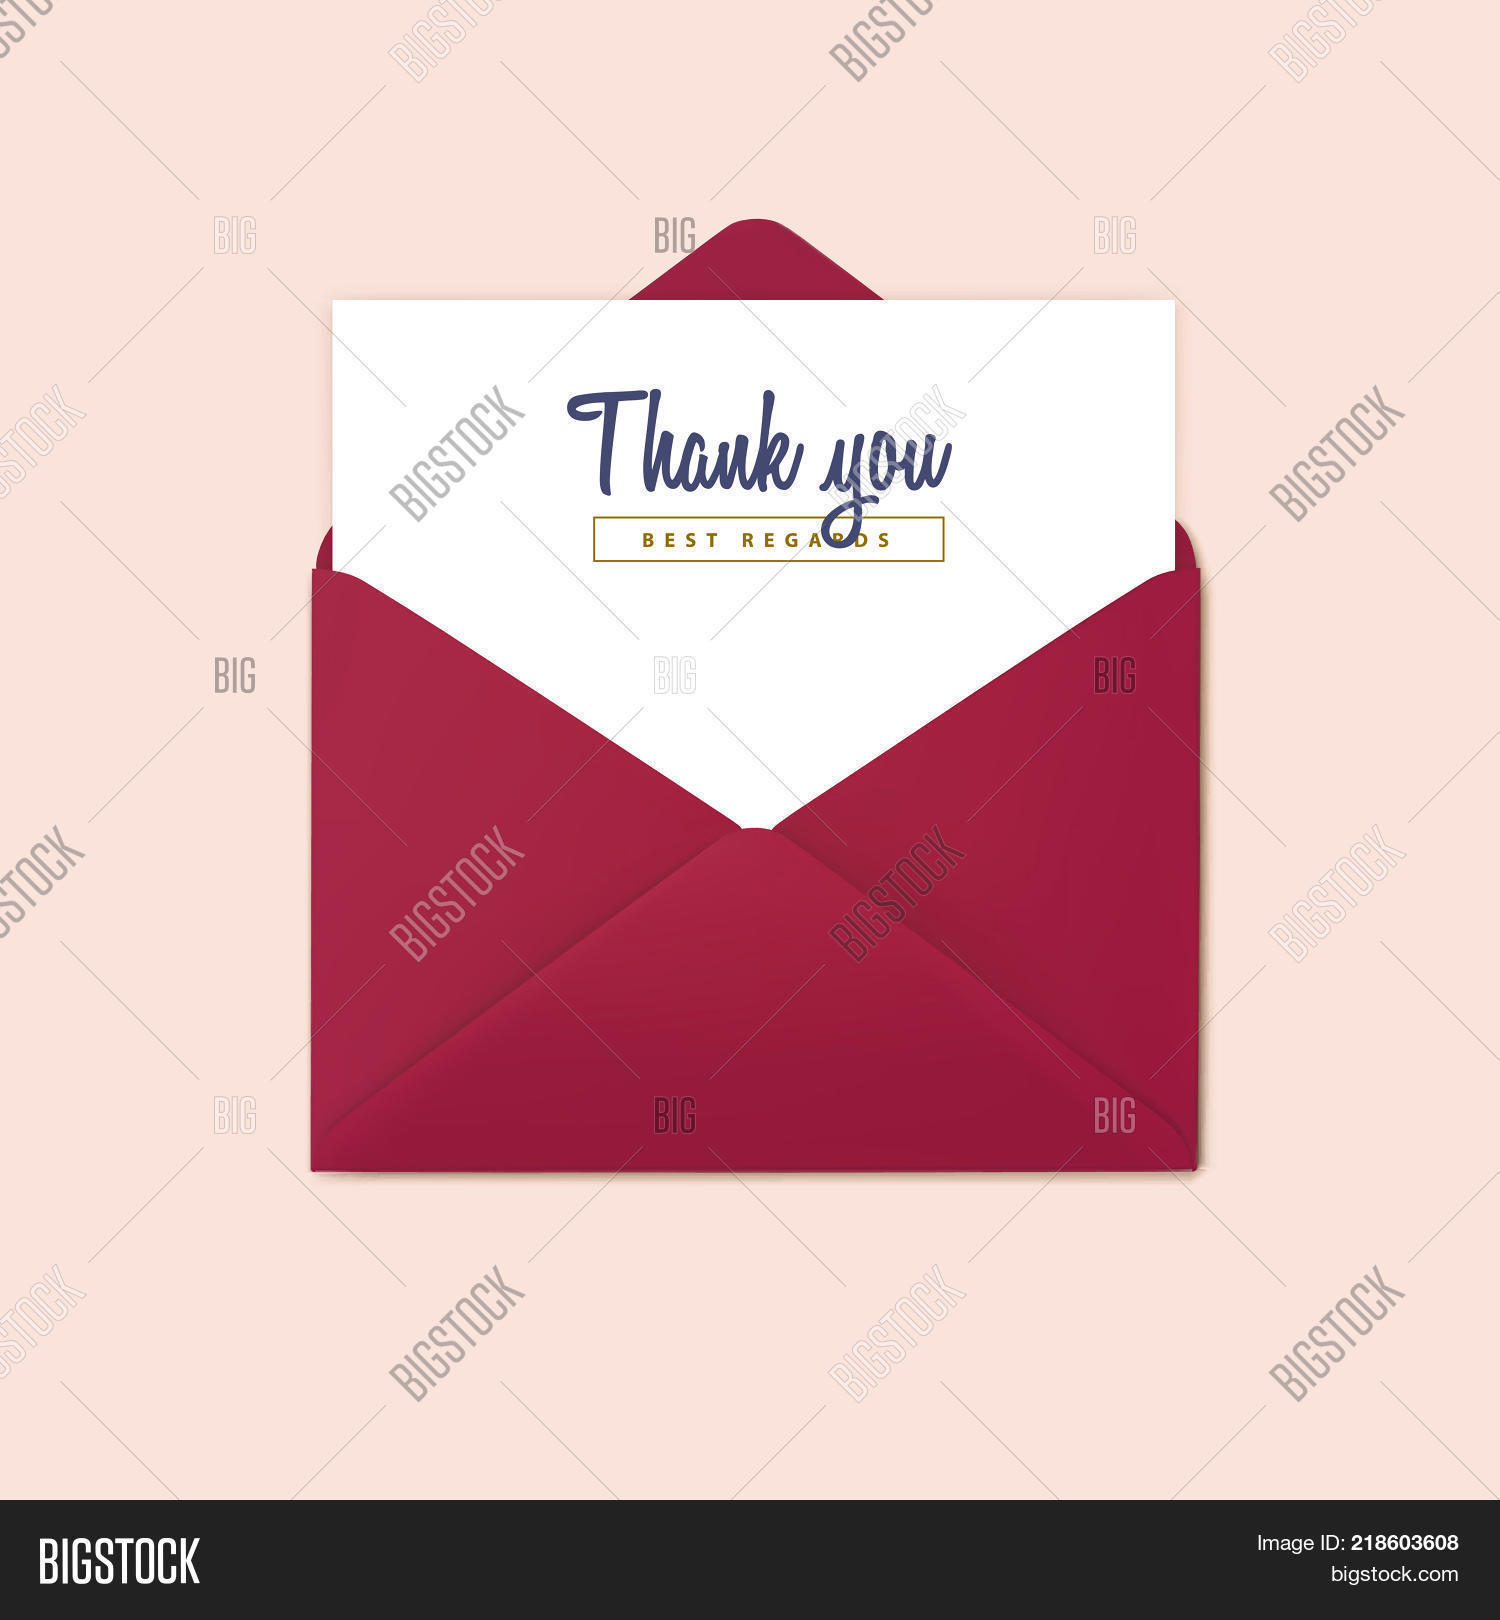 Red open envelope vector photo free trial bigstock red open envelope vector invitation design template stopboris Image collections